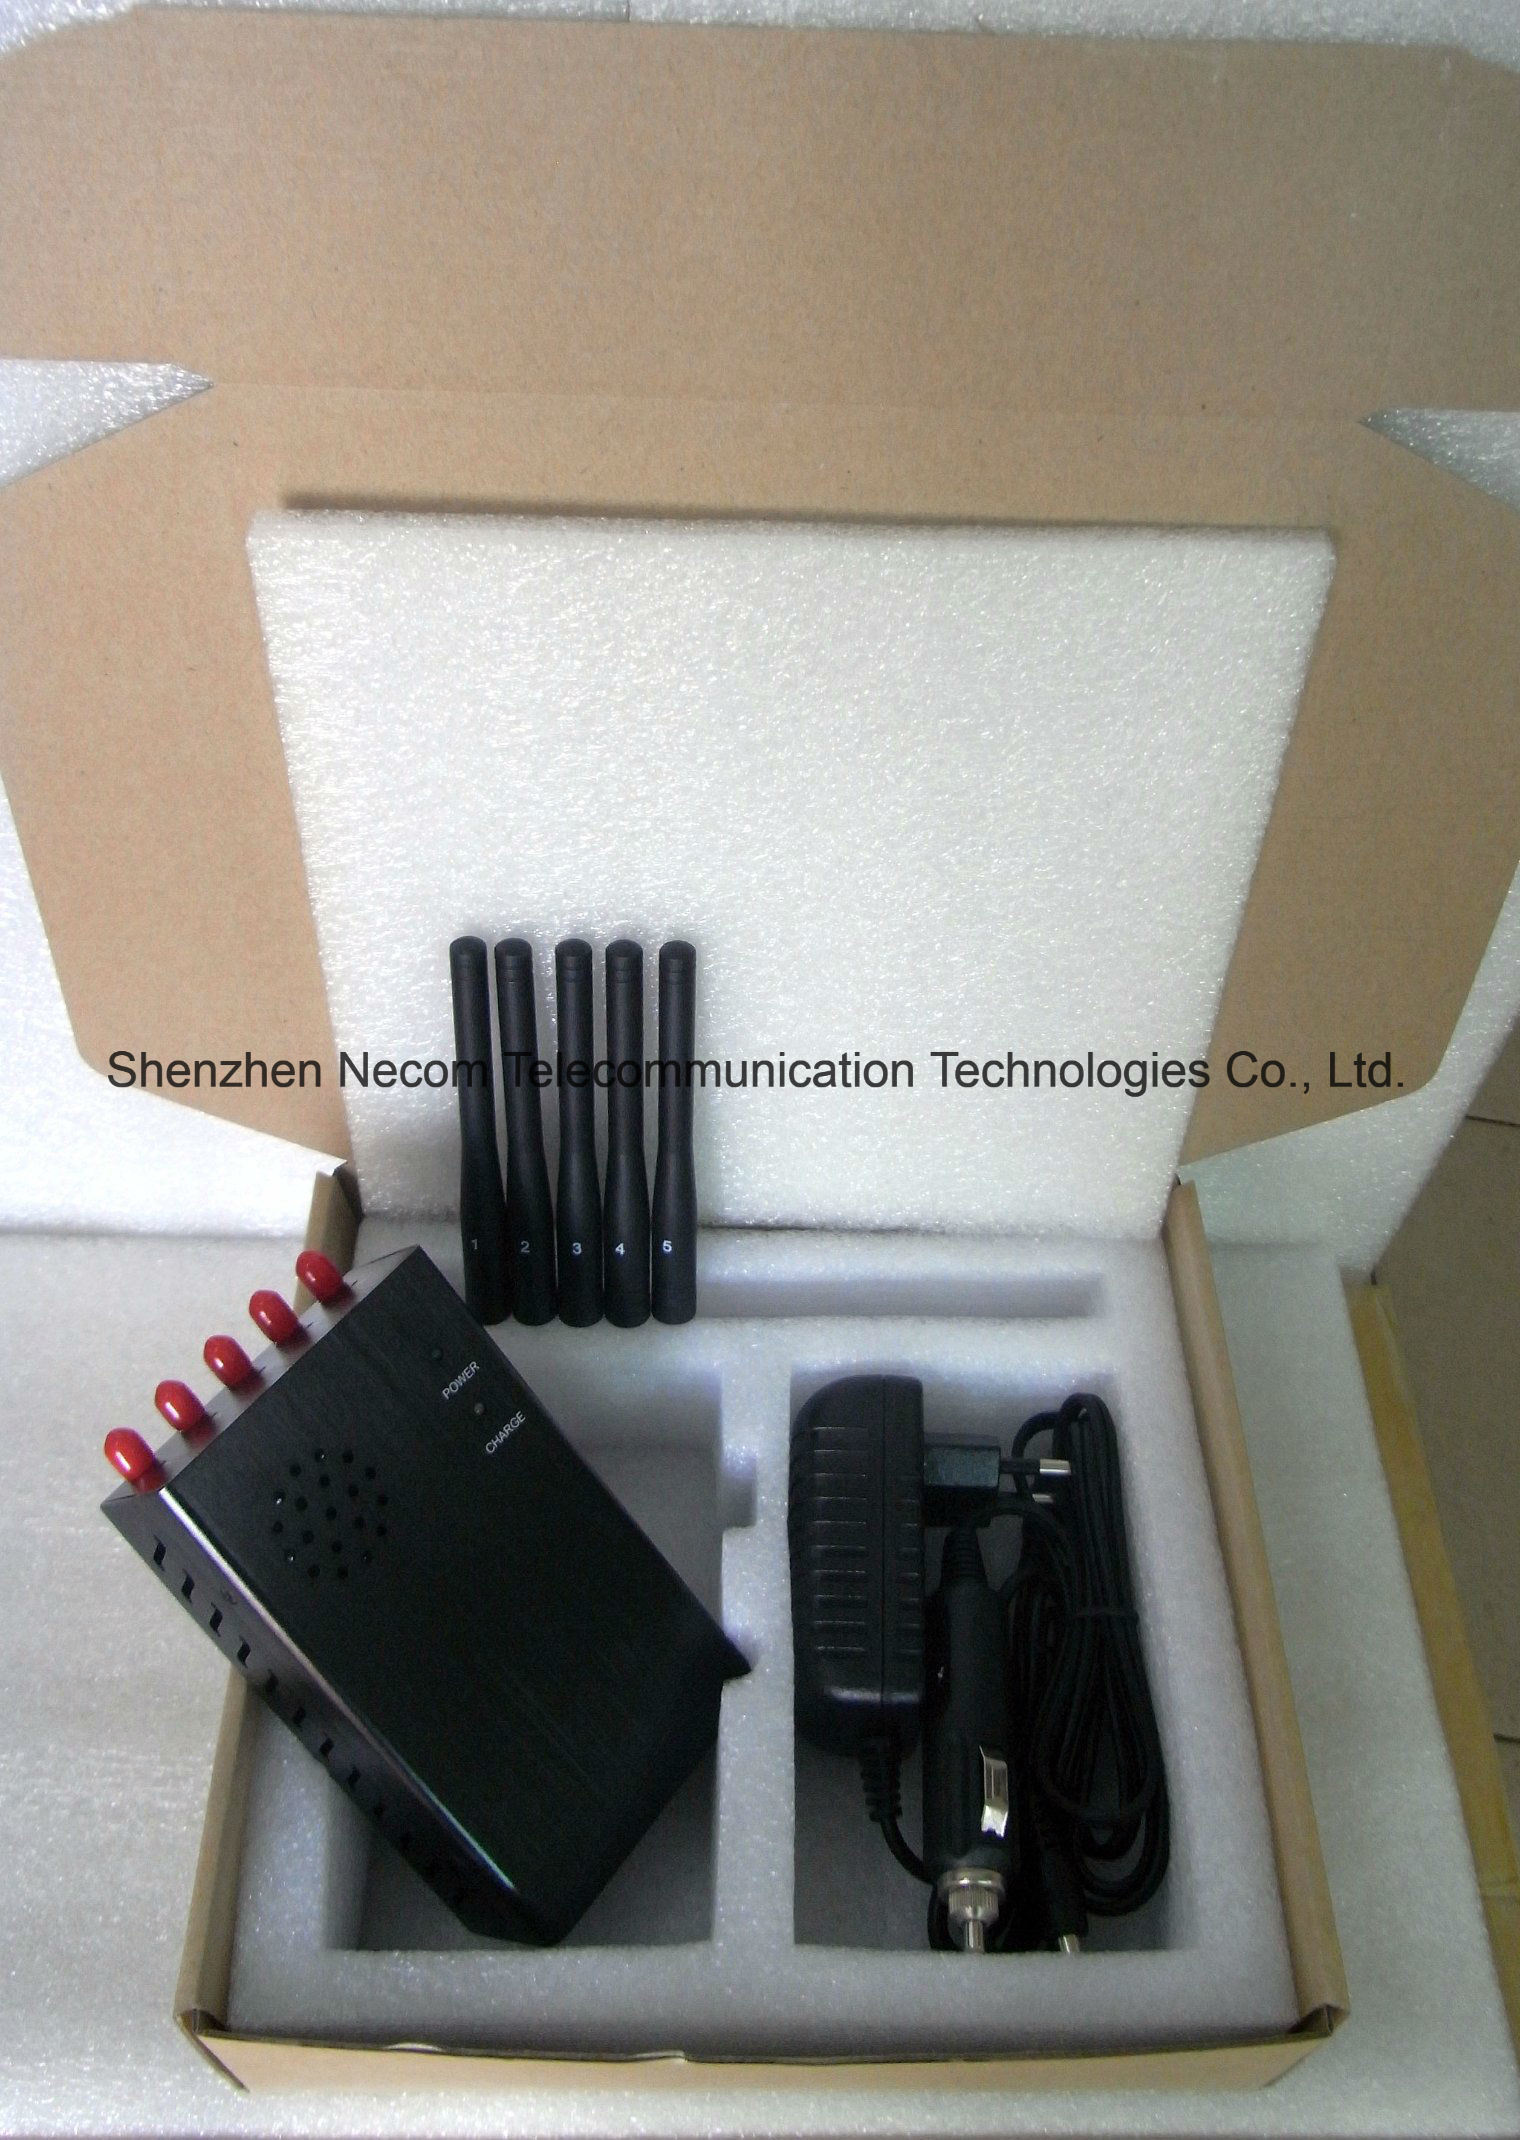 phone jammer fcc won't - China 2g+3G+Gpsl1+Lojack 5 Antennas Signal Blockers - China 2g+3G+Gpsl1+Lojack 5 Antennas Signal Blockers, 5 Band Signal Jammers